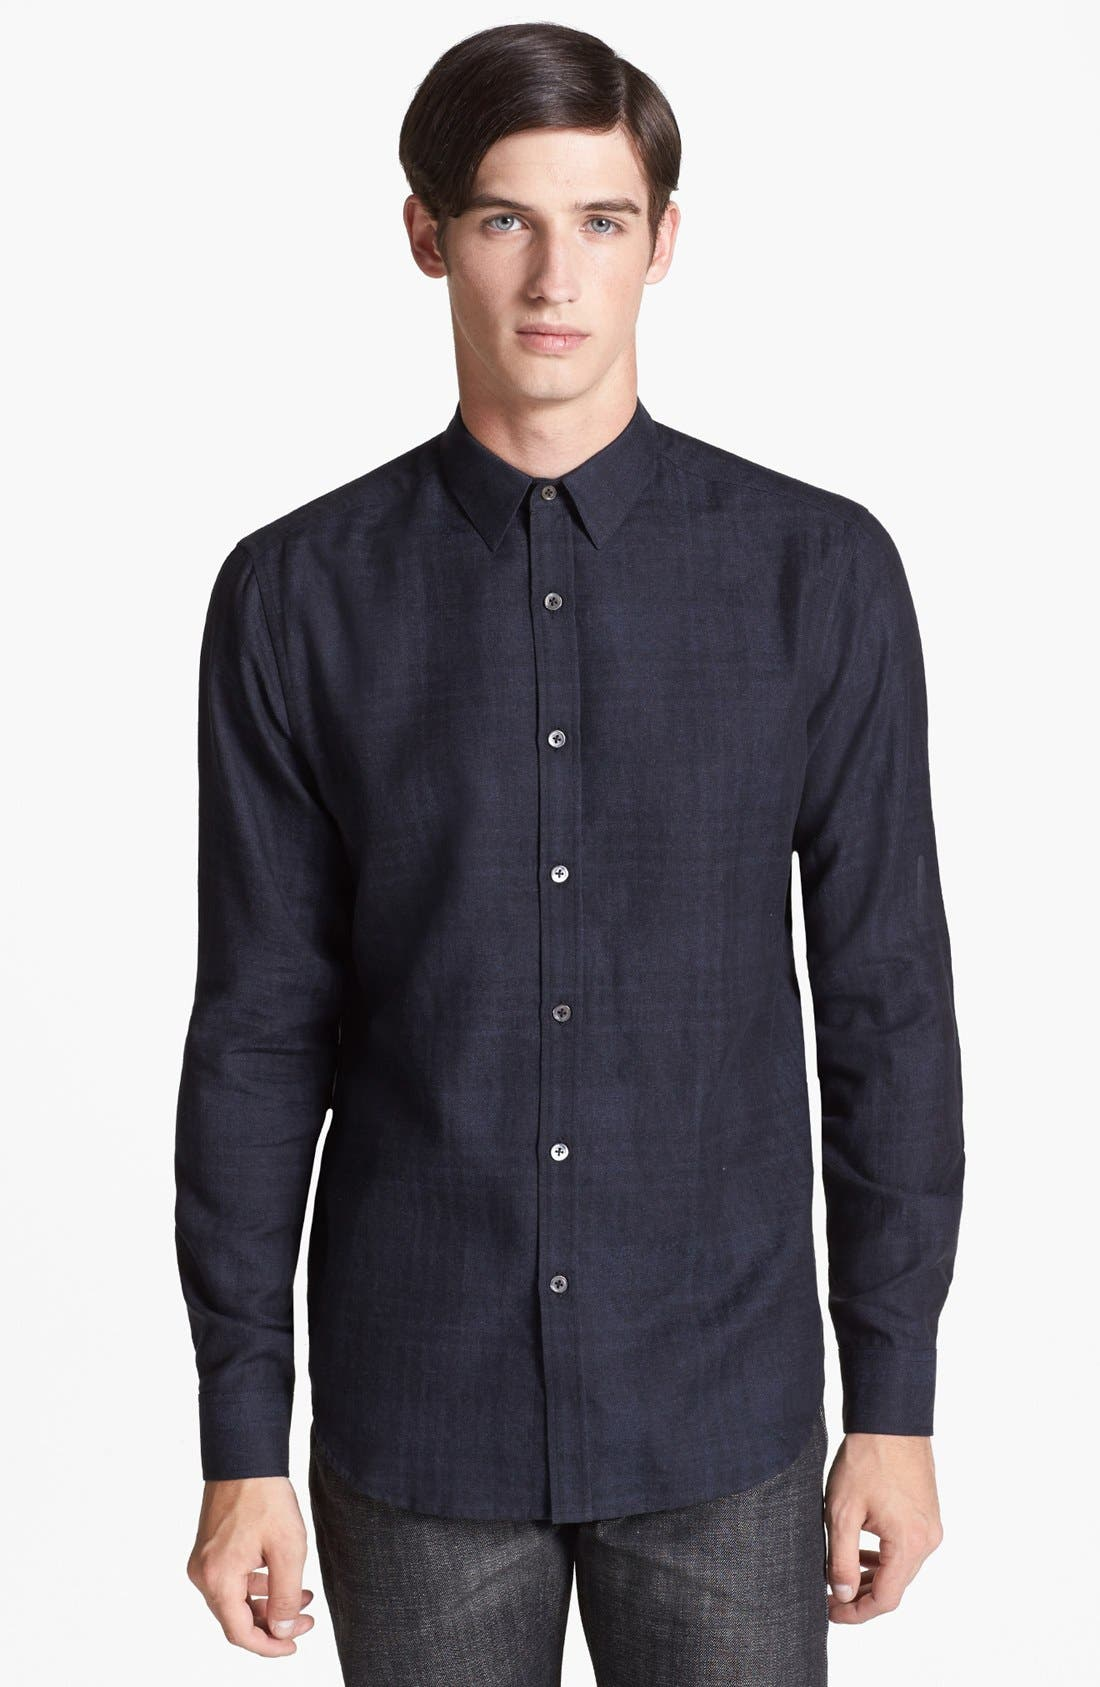 Main Image - Theory 'Zack PS Delcro' Trim Fit Sport Shirt